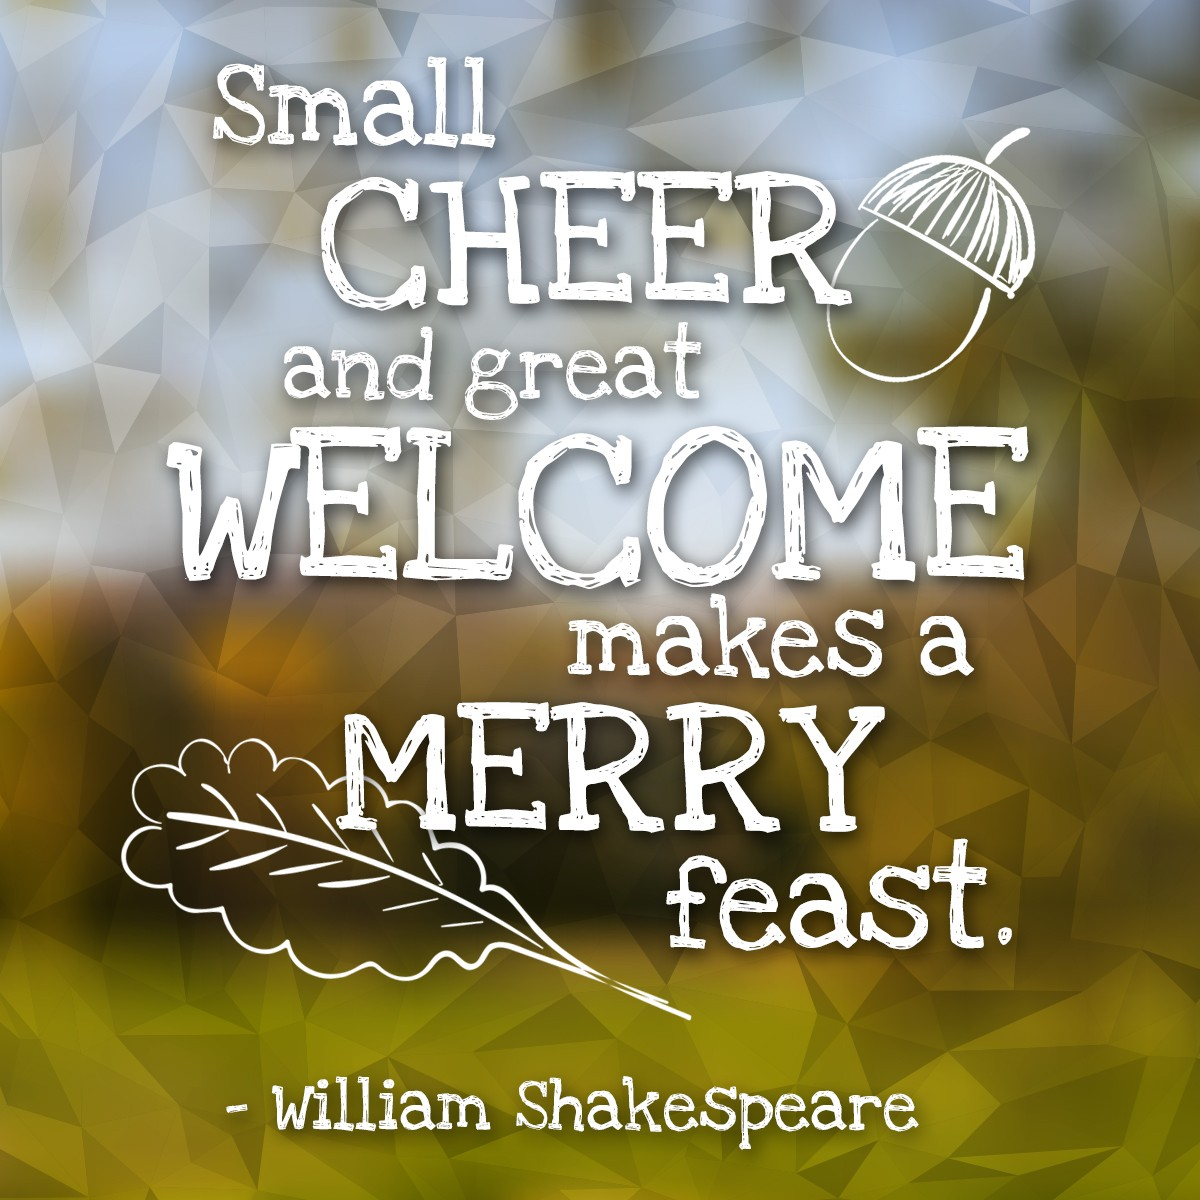 Small cheer and great welcome makes a merry feast. - William Shakespeare | Thanksgiving.com